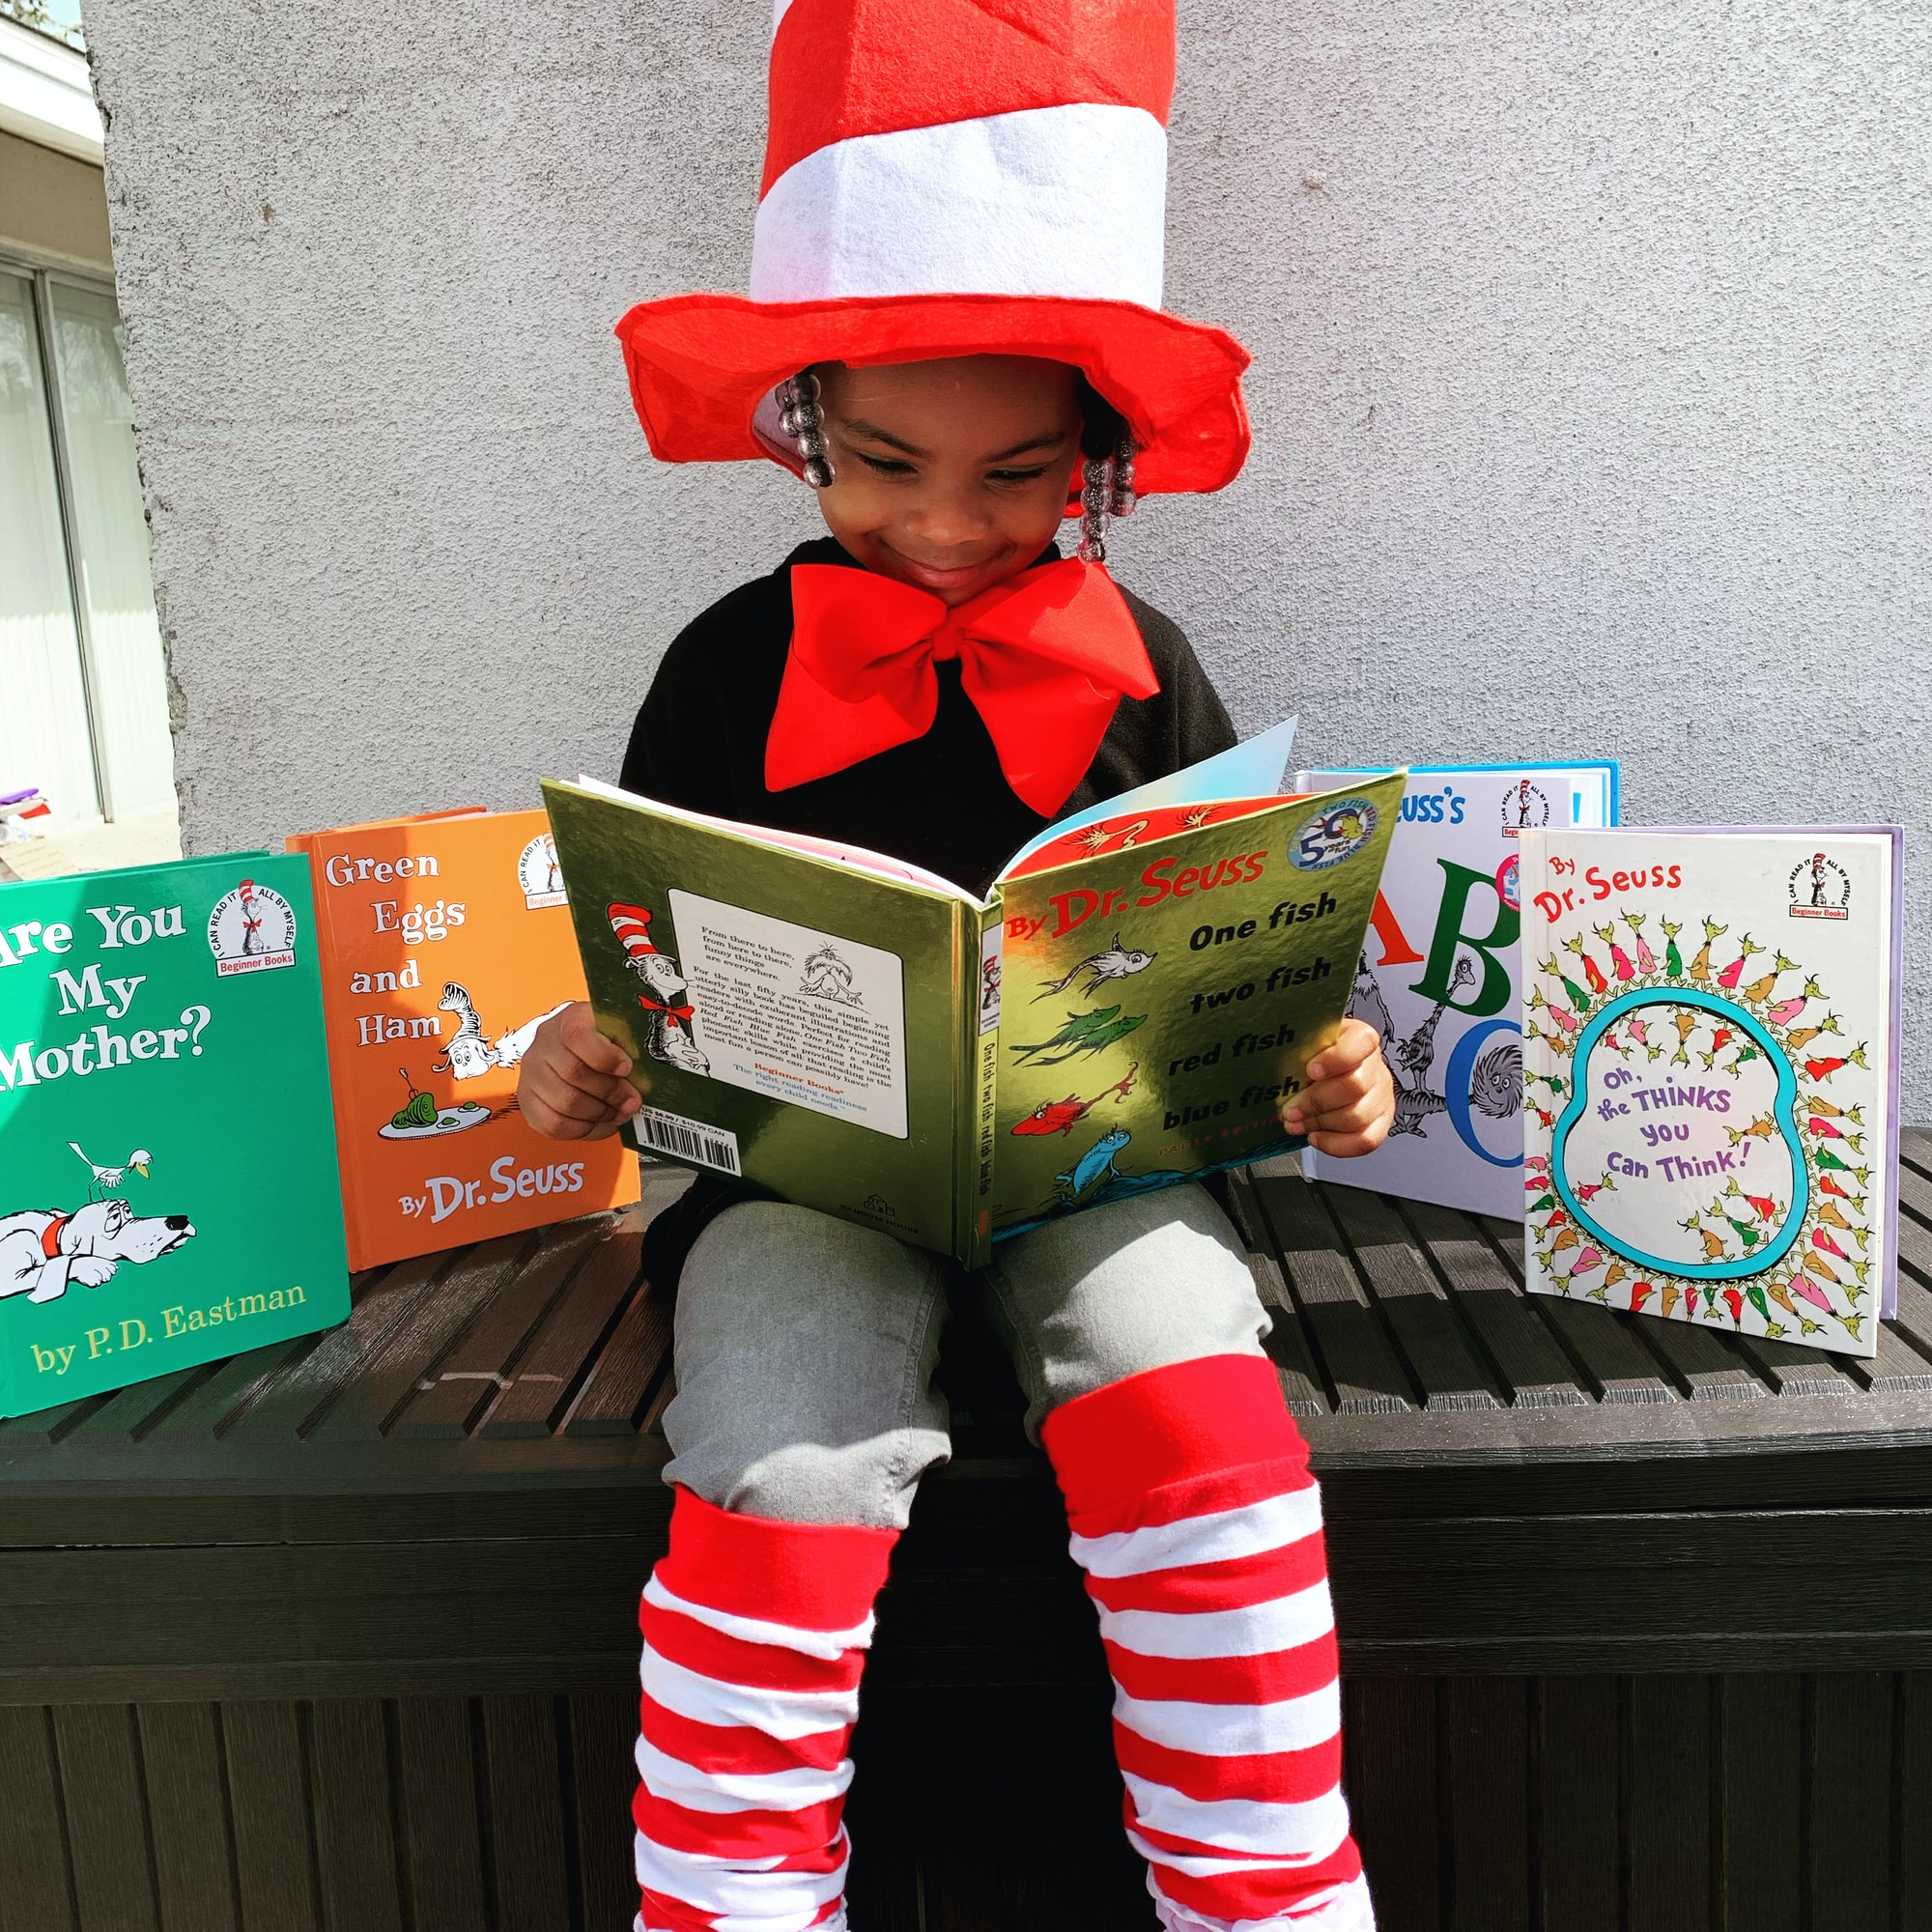 Child in red hat reading a book